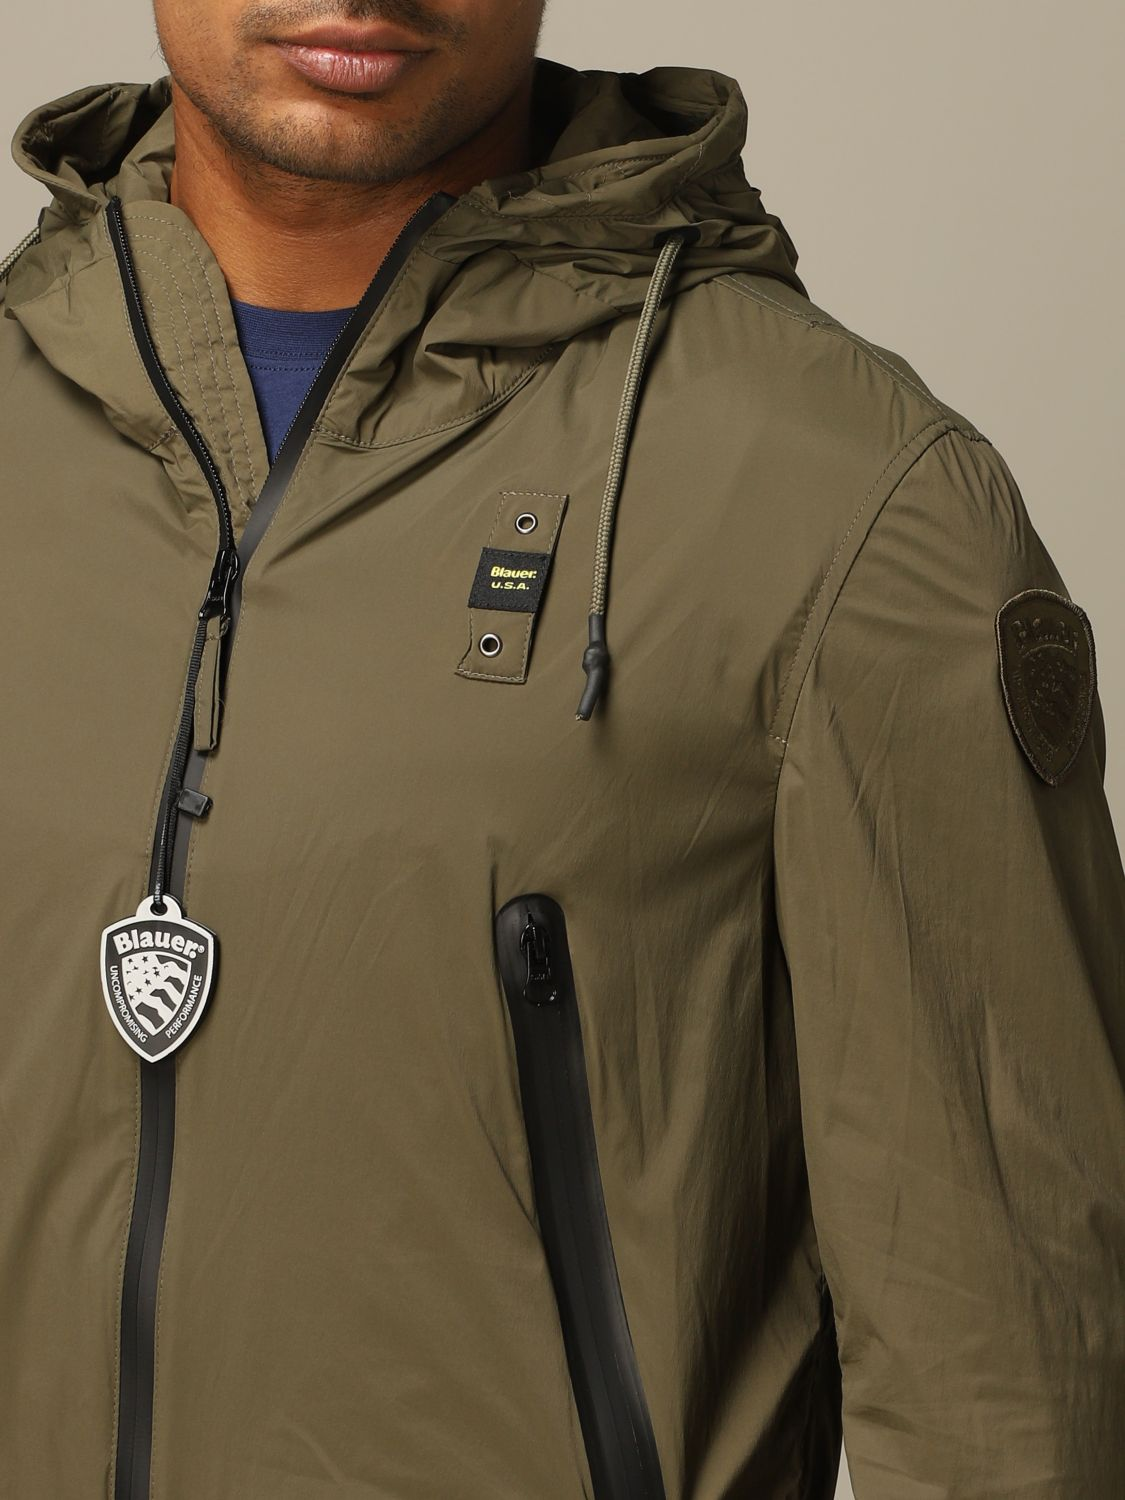 Jacket Blauer: Blauer sports jacket with hood military 3